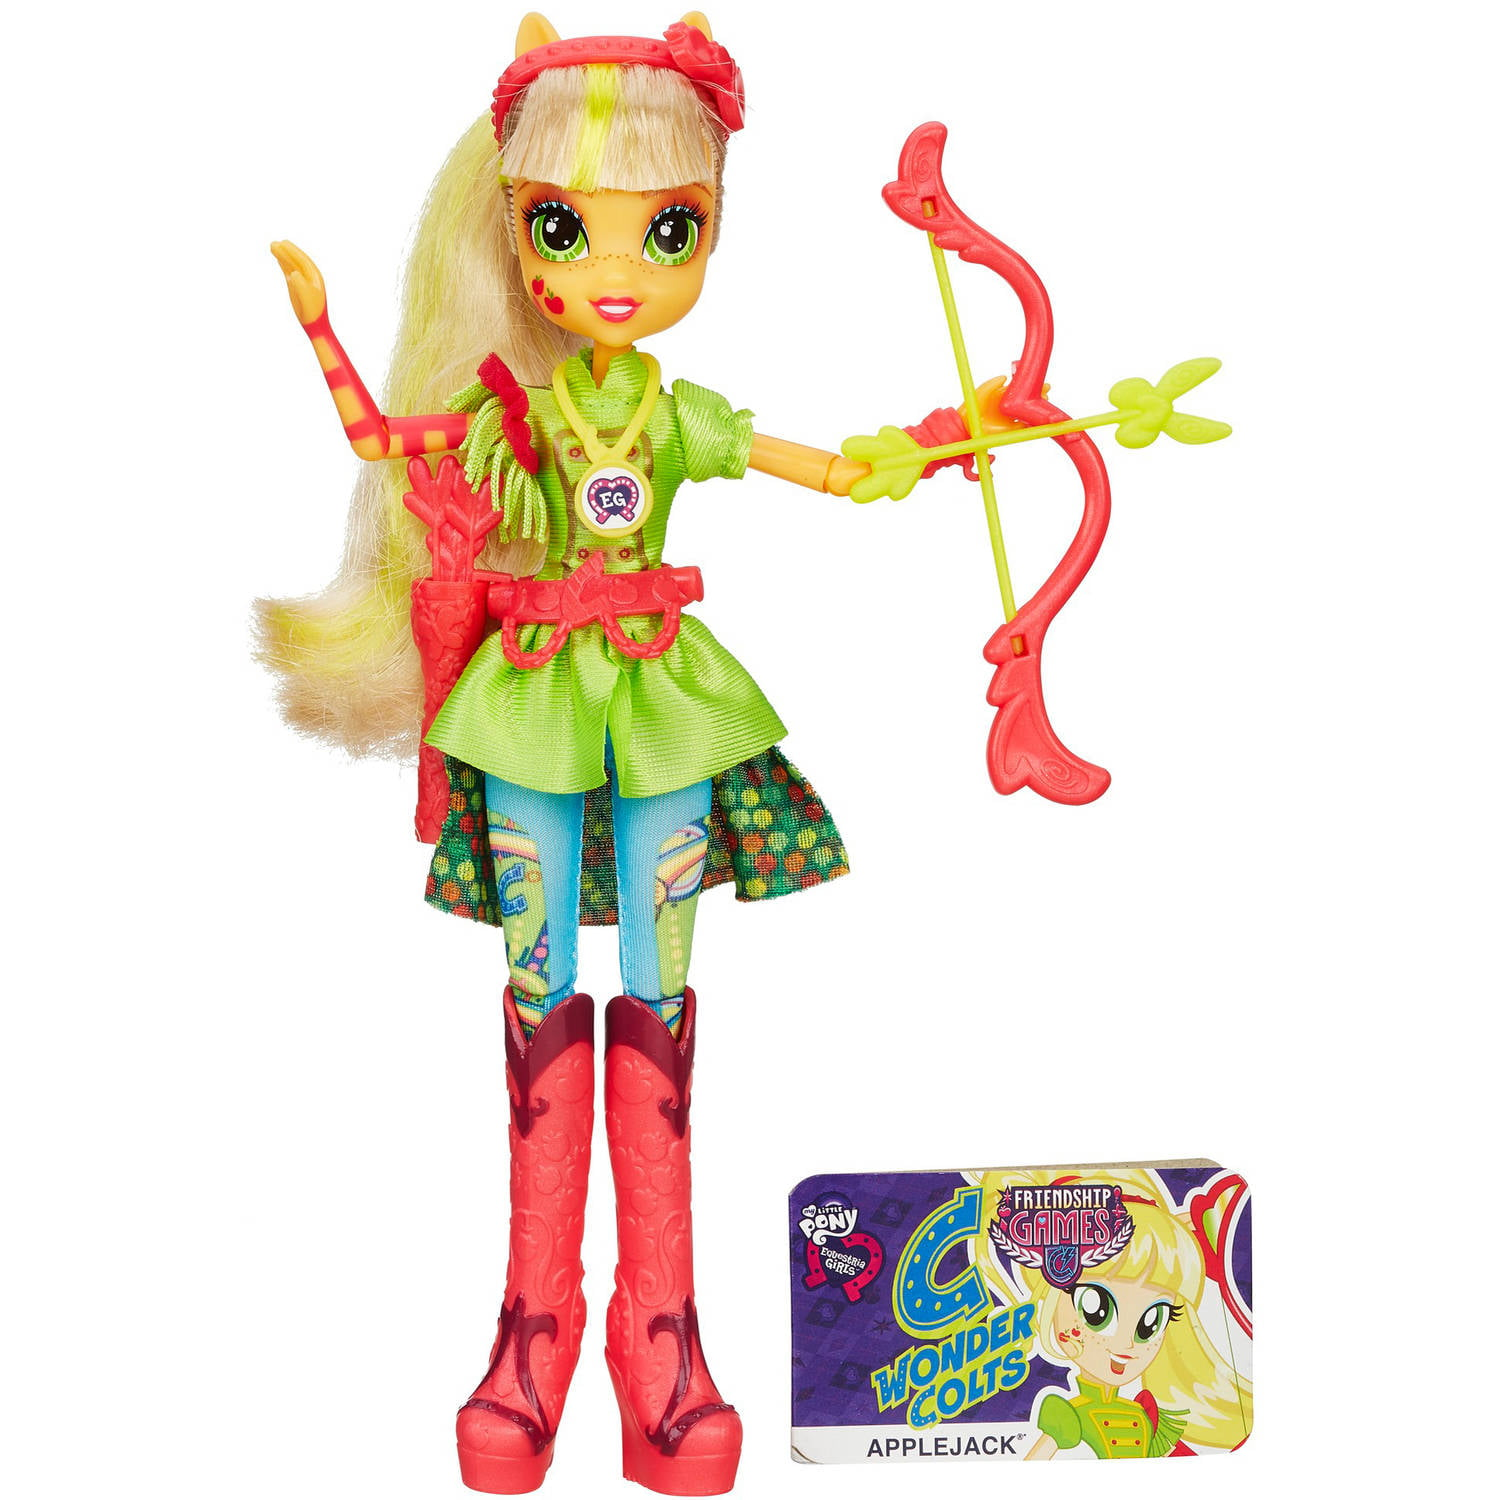 My Little Pony Equestria Girls Applejack Sporty Style Archery Doll by Hasbro